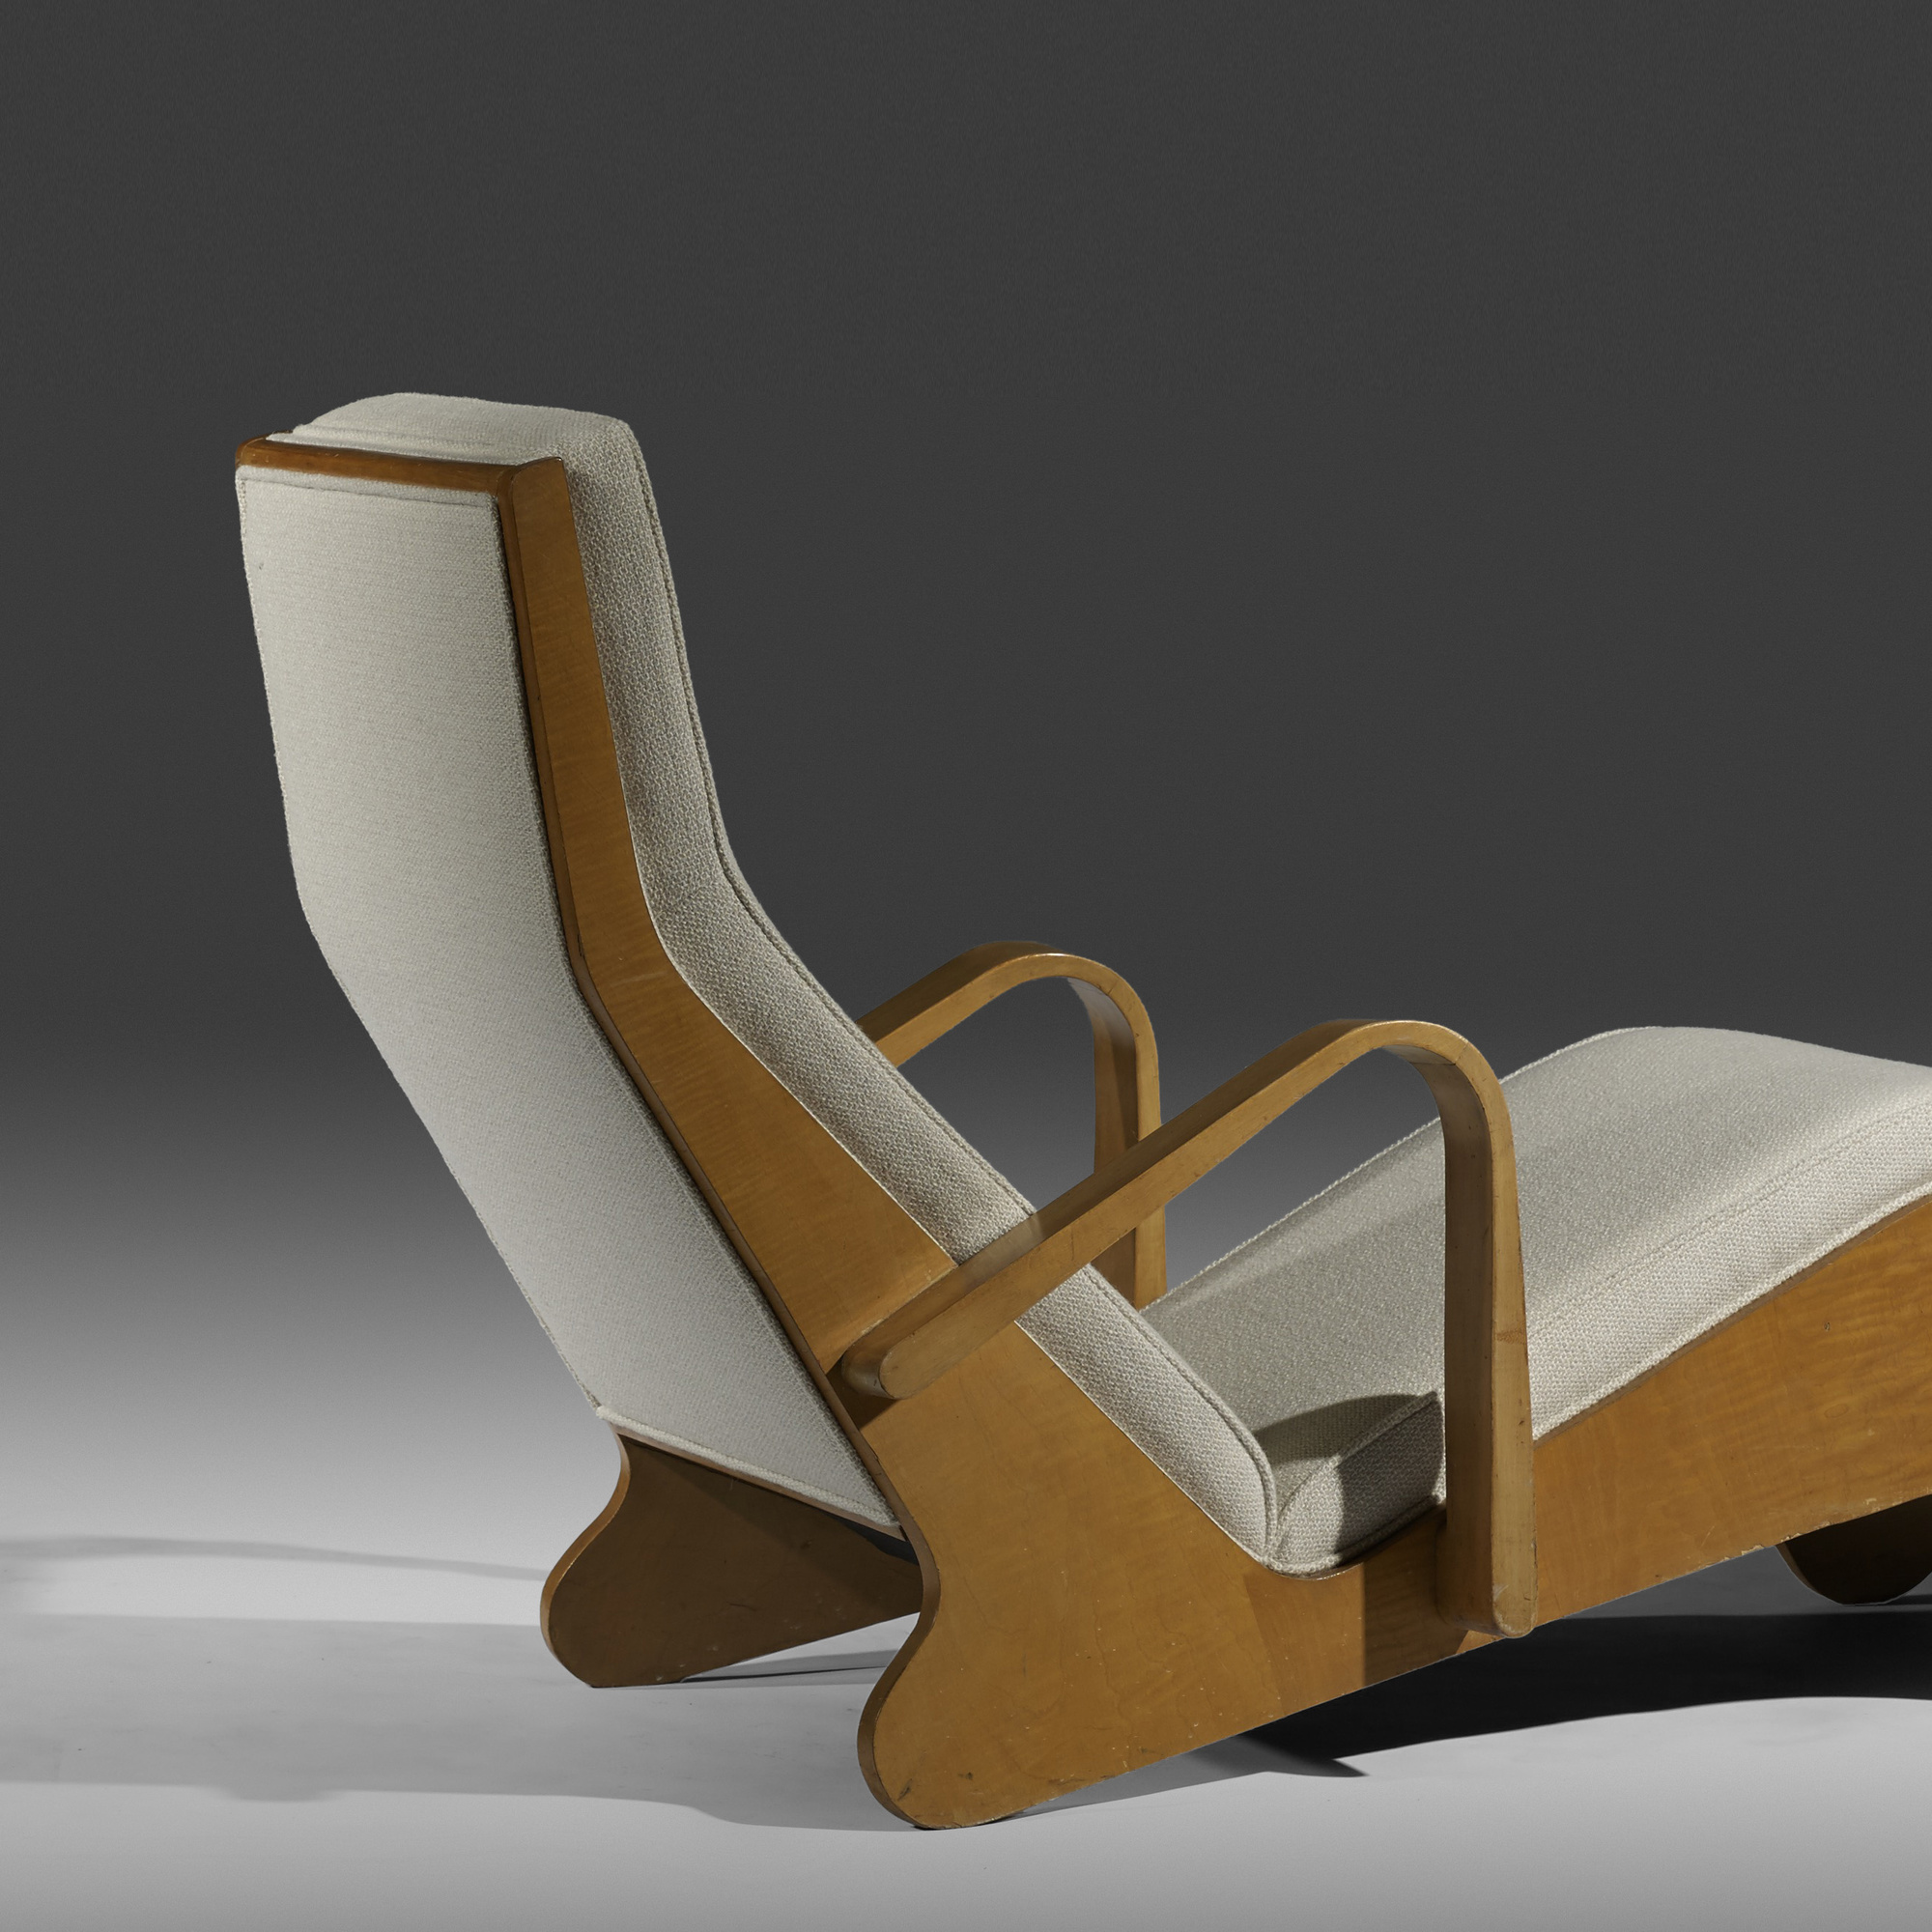 19 Marcel Breuer Rare Chaise Lounge 3 Of